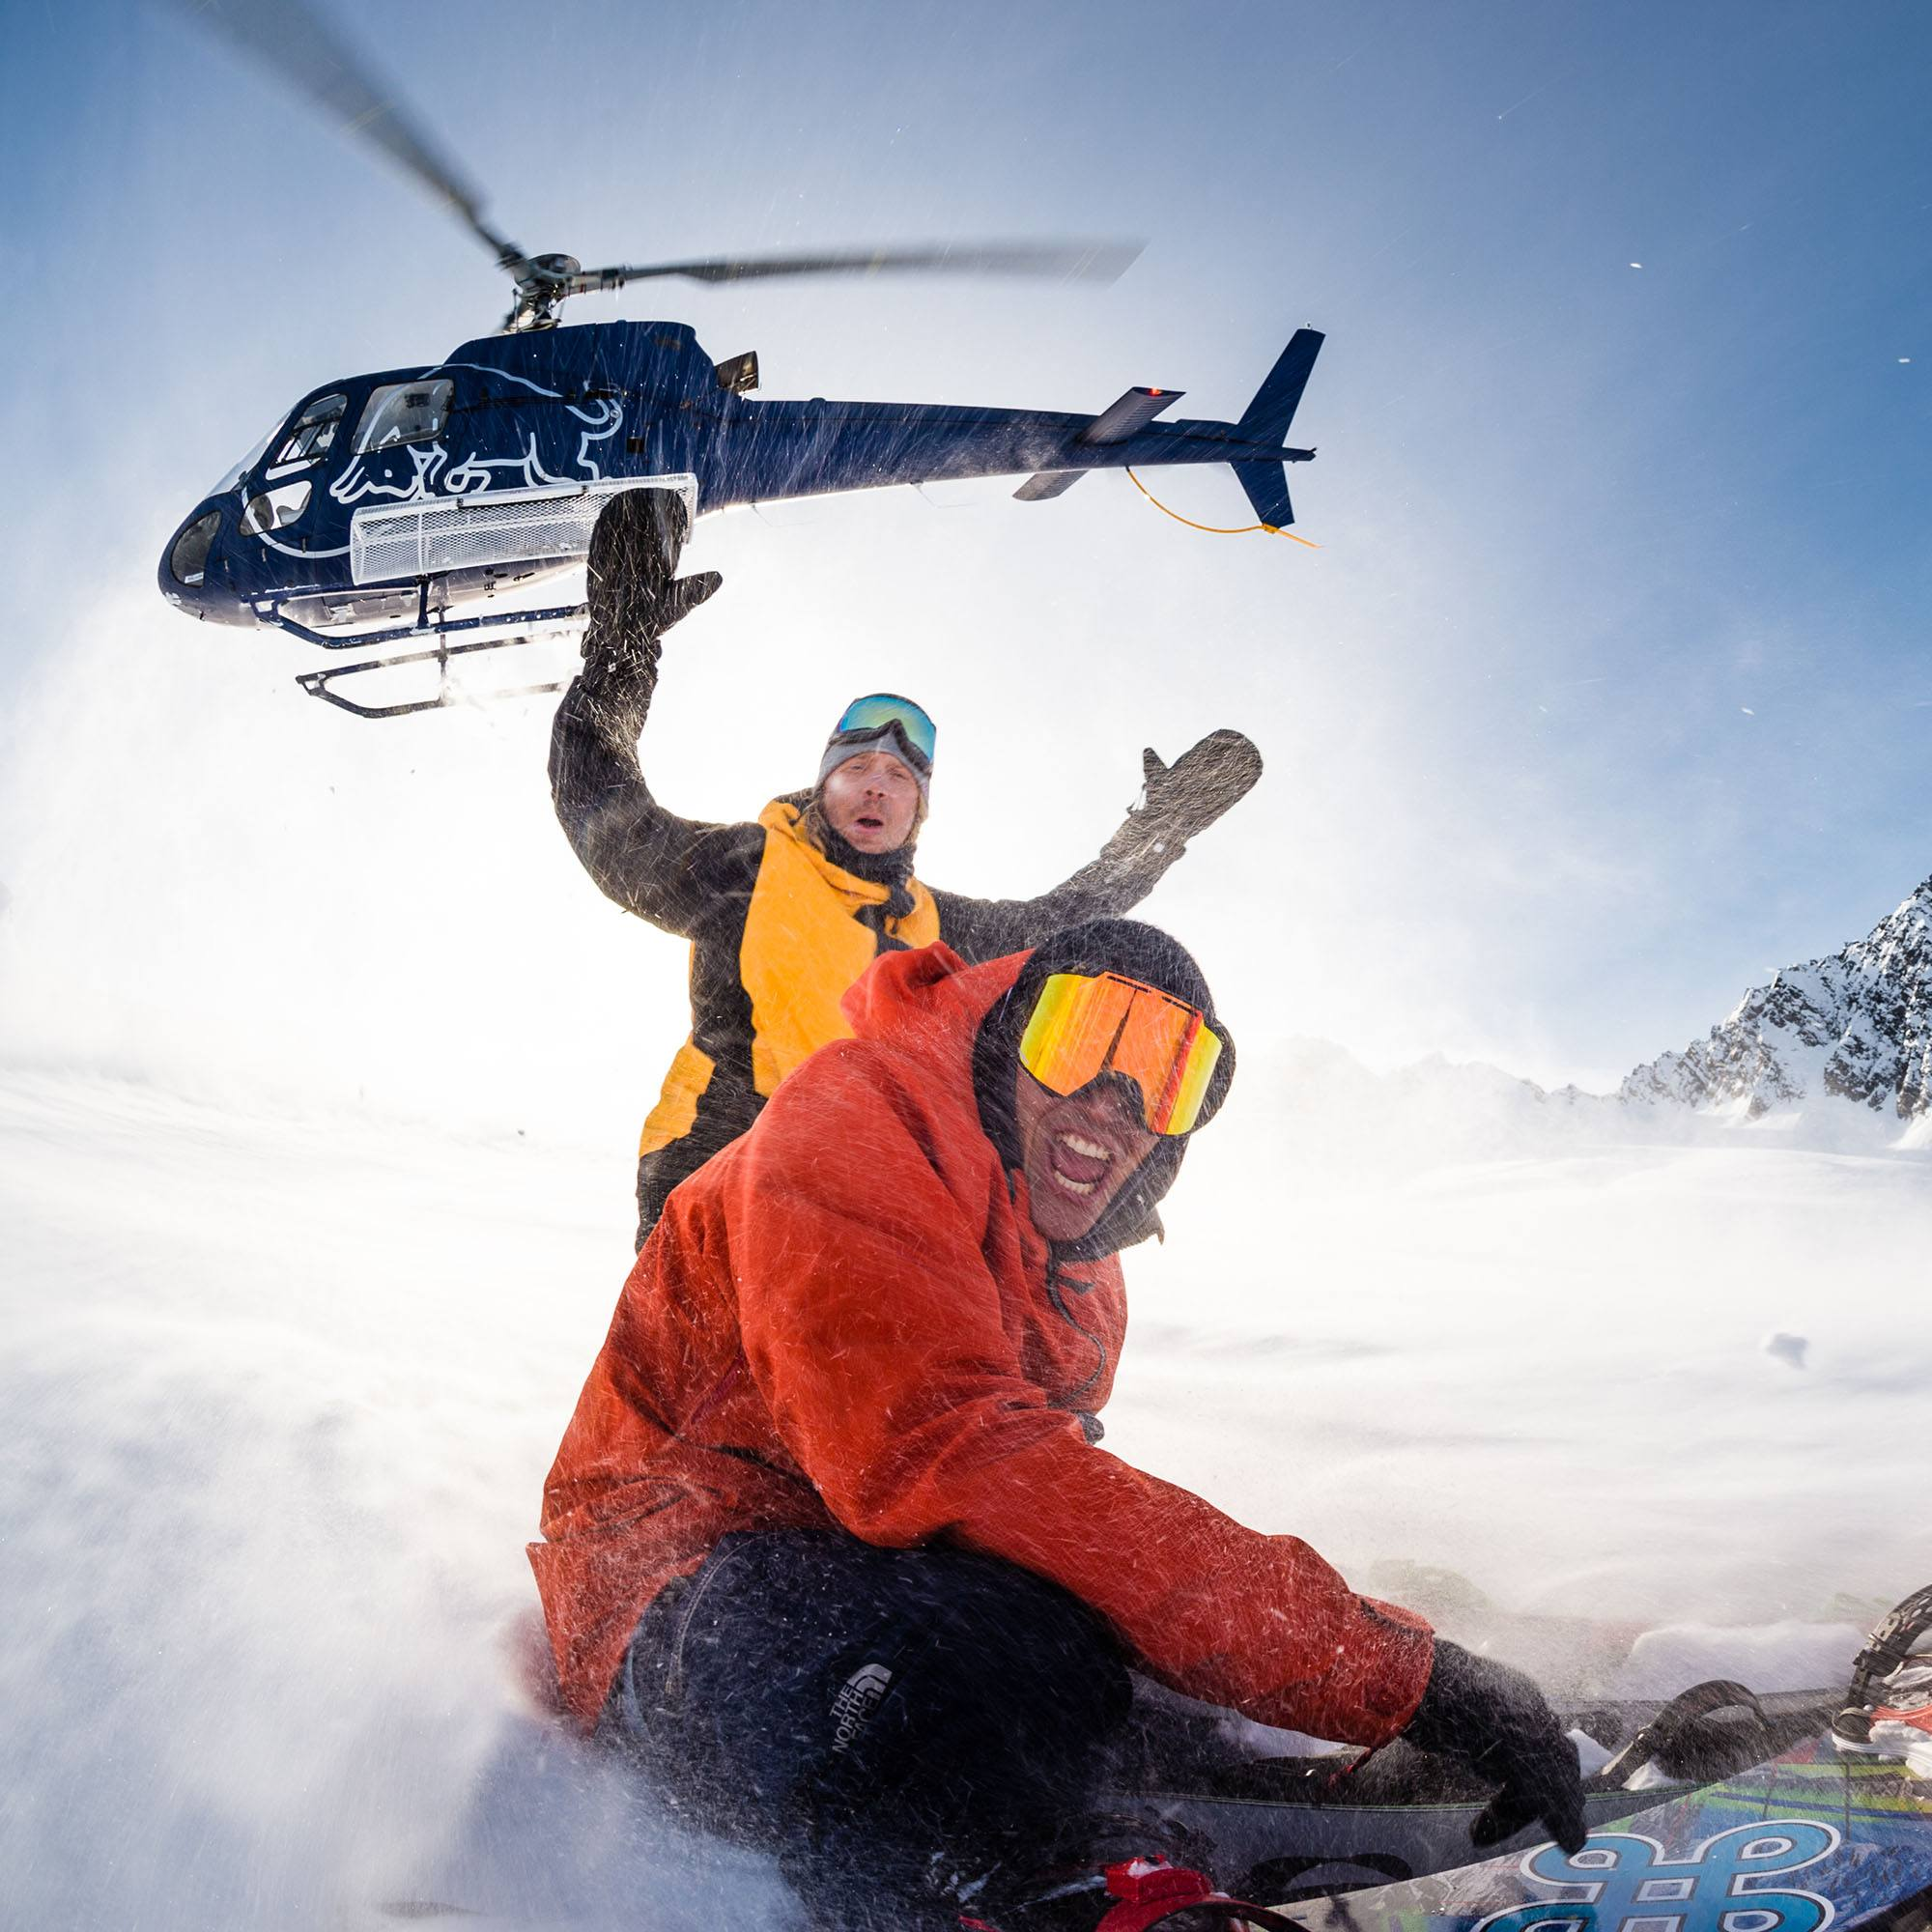 Travis Rice and Victor De Le Rue get dropped off by helicopter during filming of The Fourth Phase (Tim Zimmerman/Red Bull)